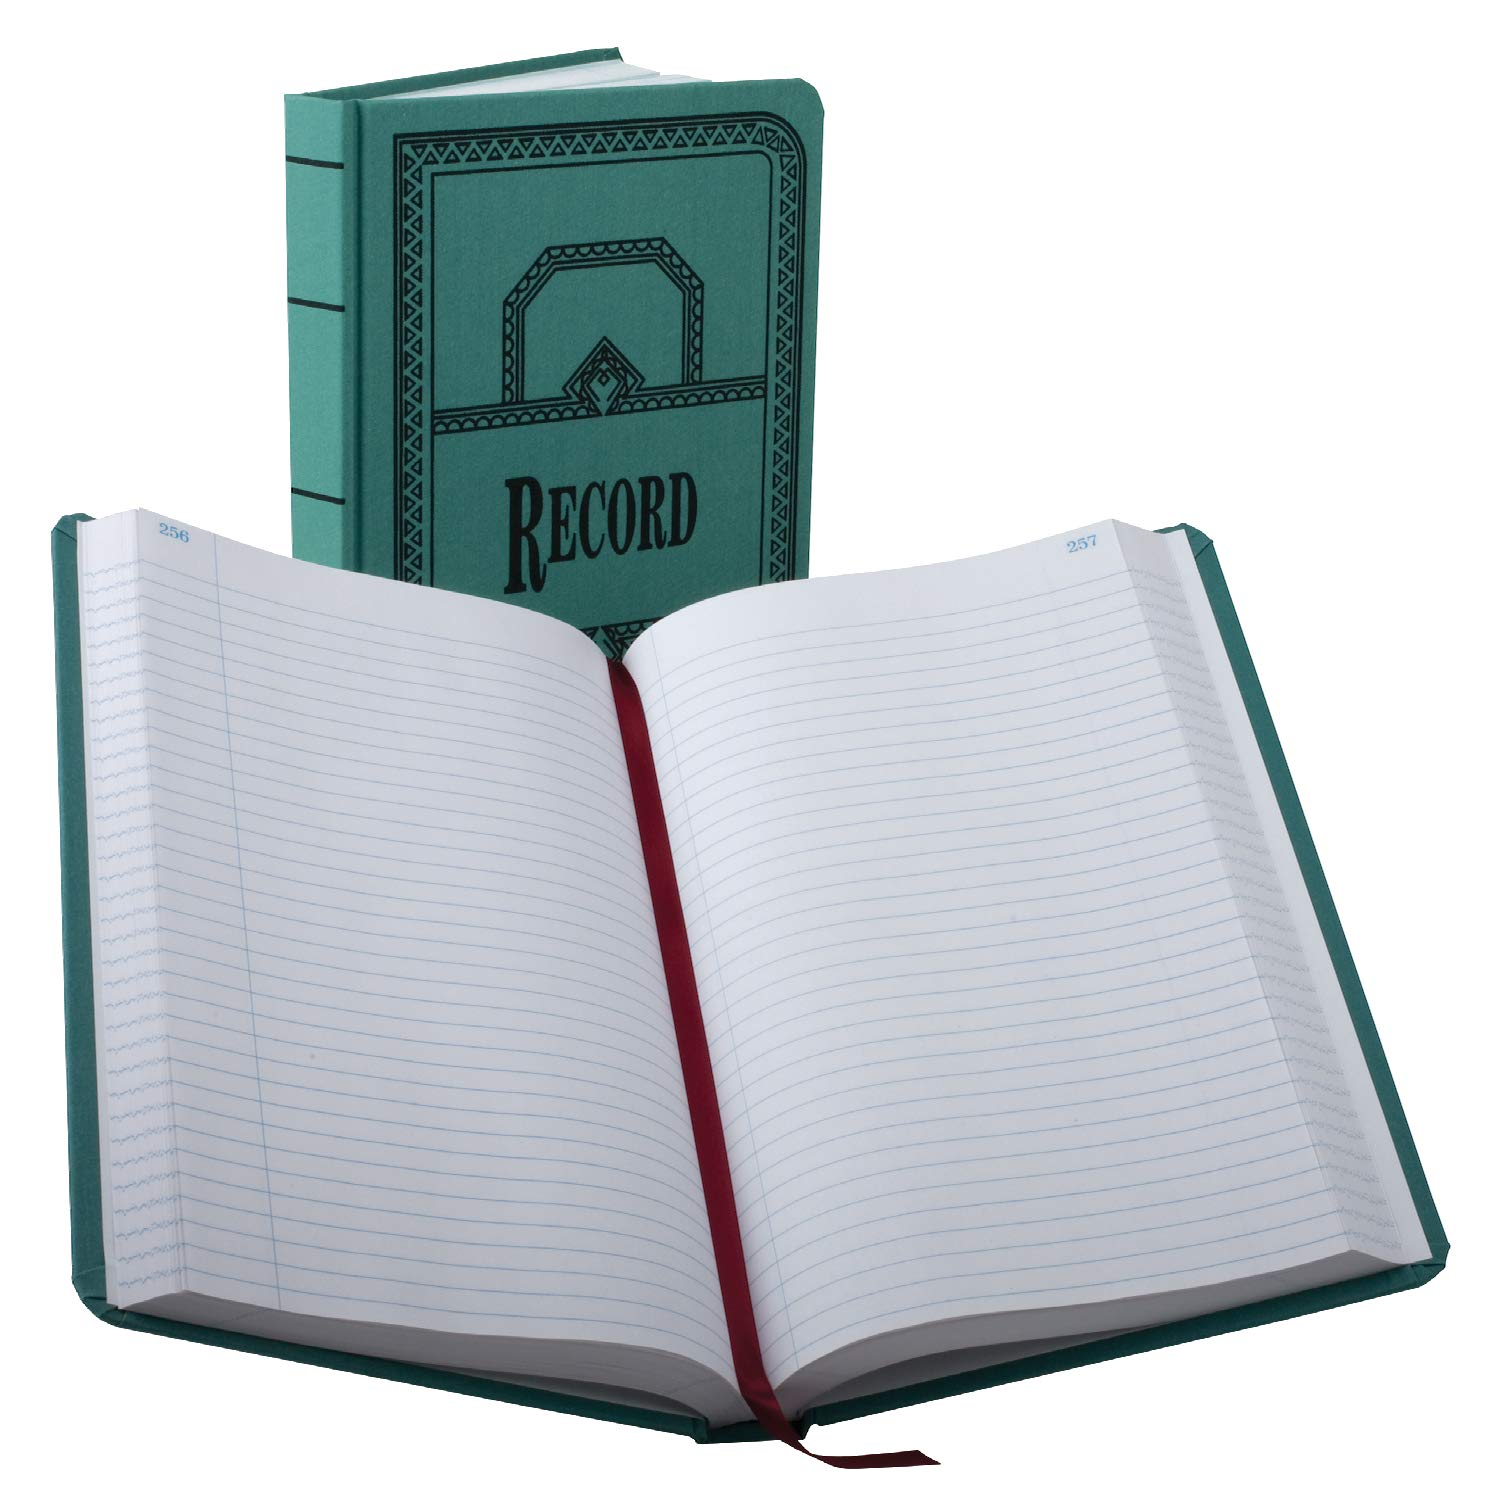 Boorum & Pease 66500R Record/Account Book, Record Rule, Blue, 500 Pages, 12 1/8 x 7 5/8